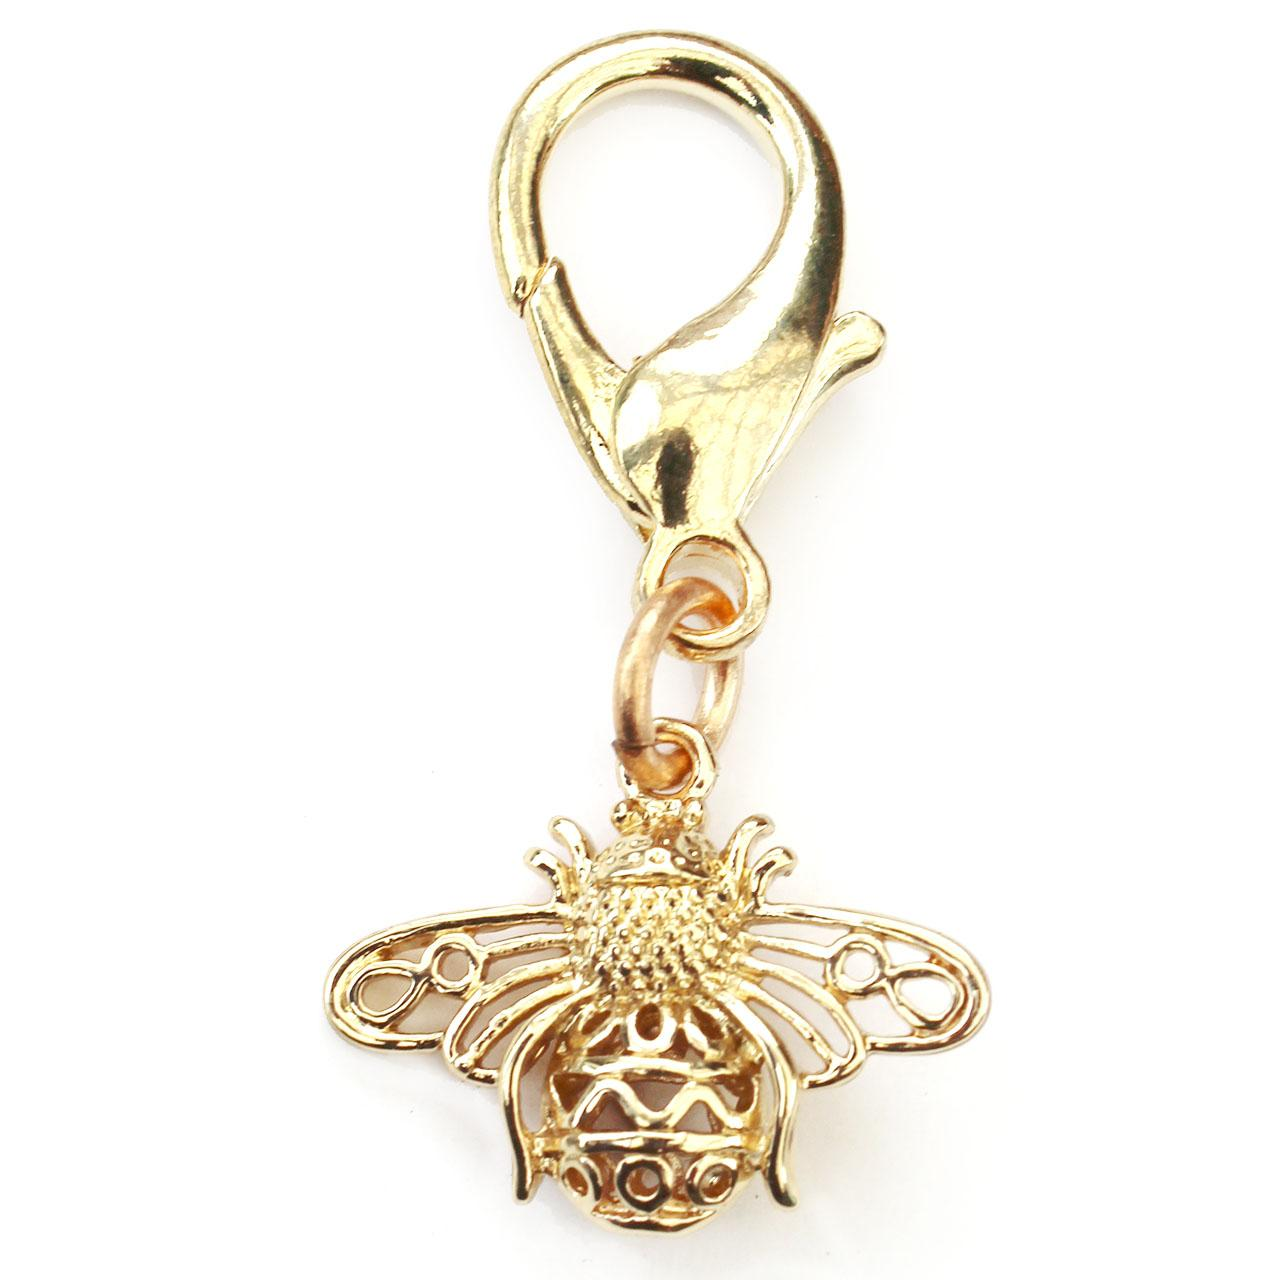 Busy Bee Filigree Dog Collar Charm - Gold